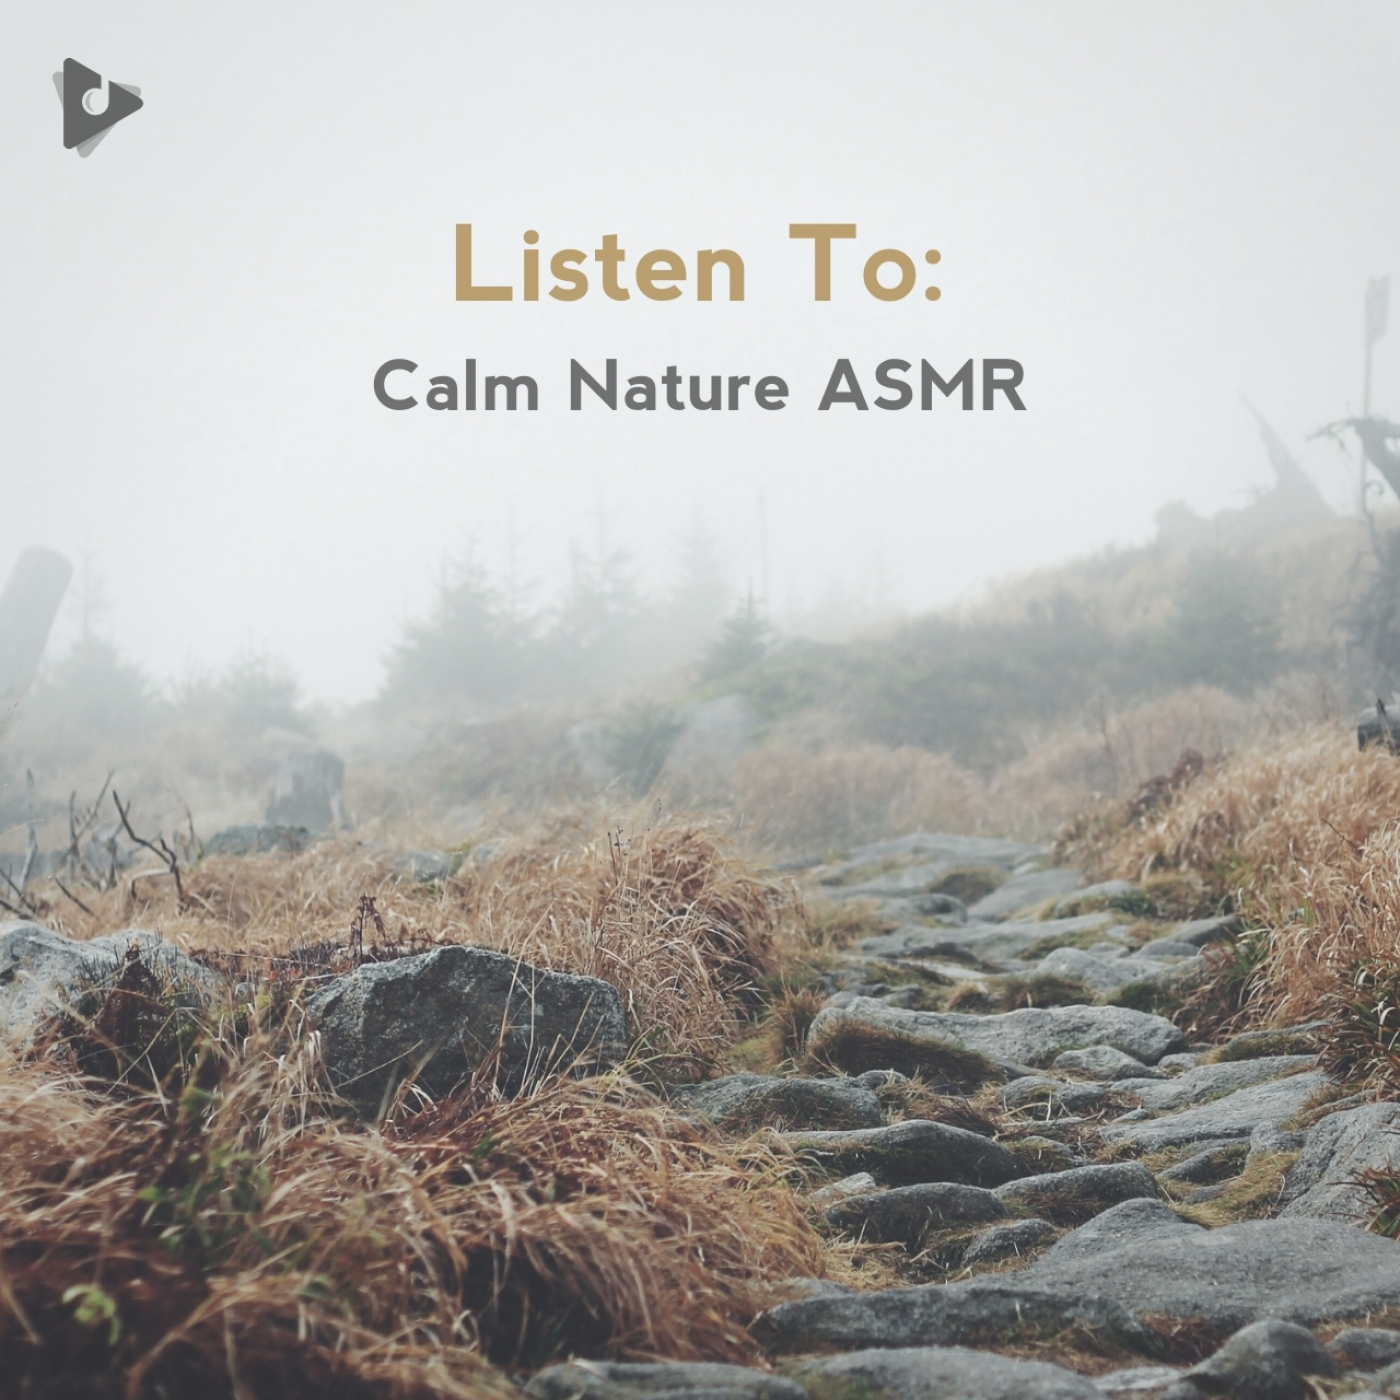 Listen To: Calm Nature ASMR